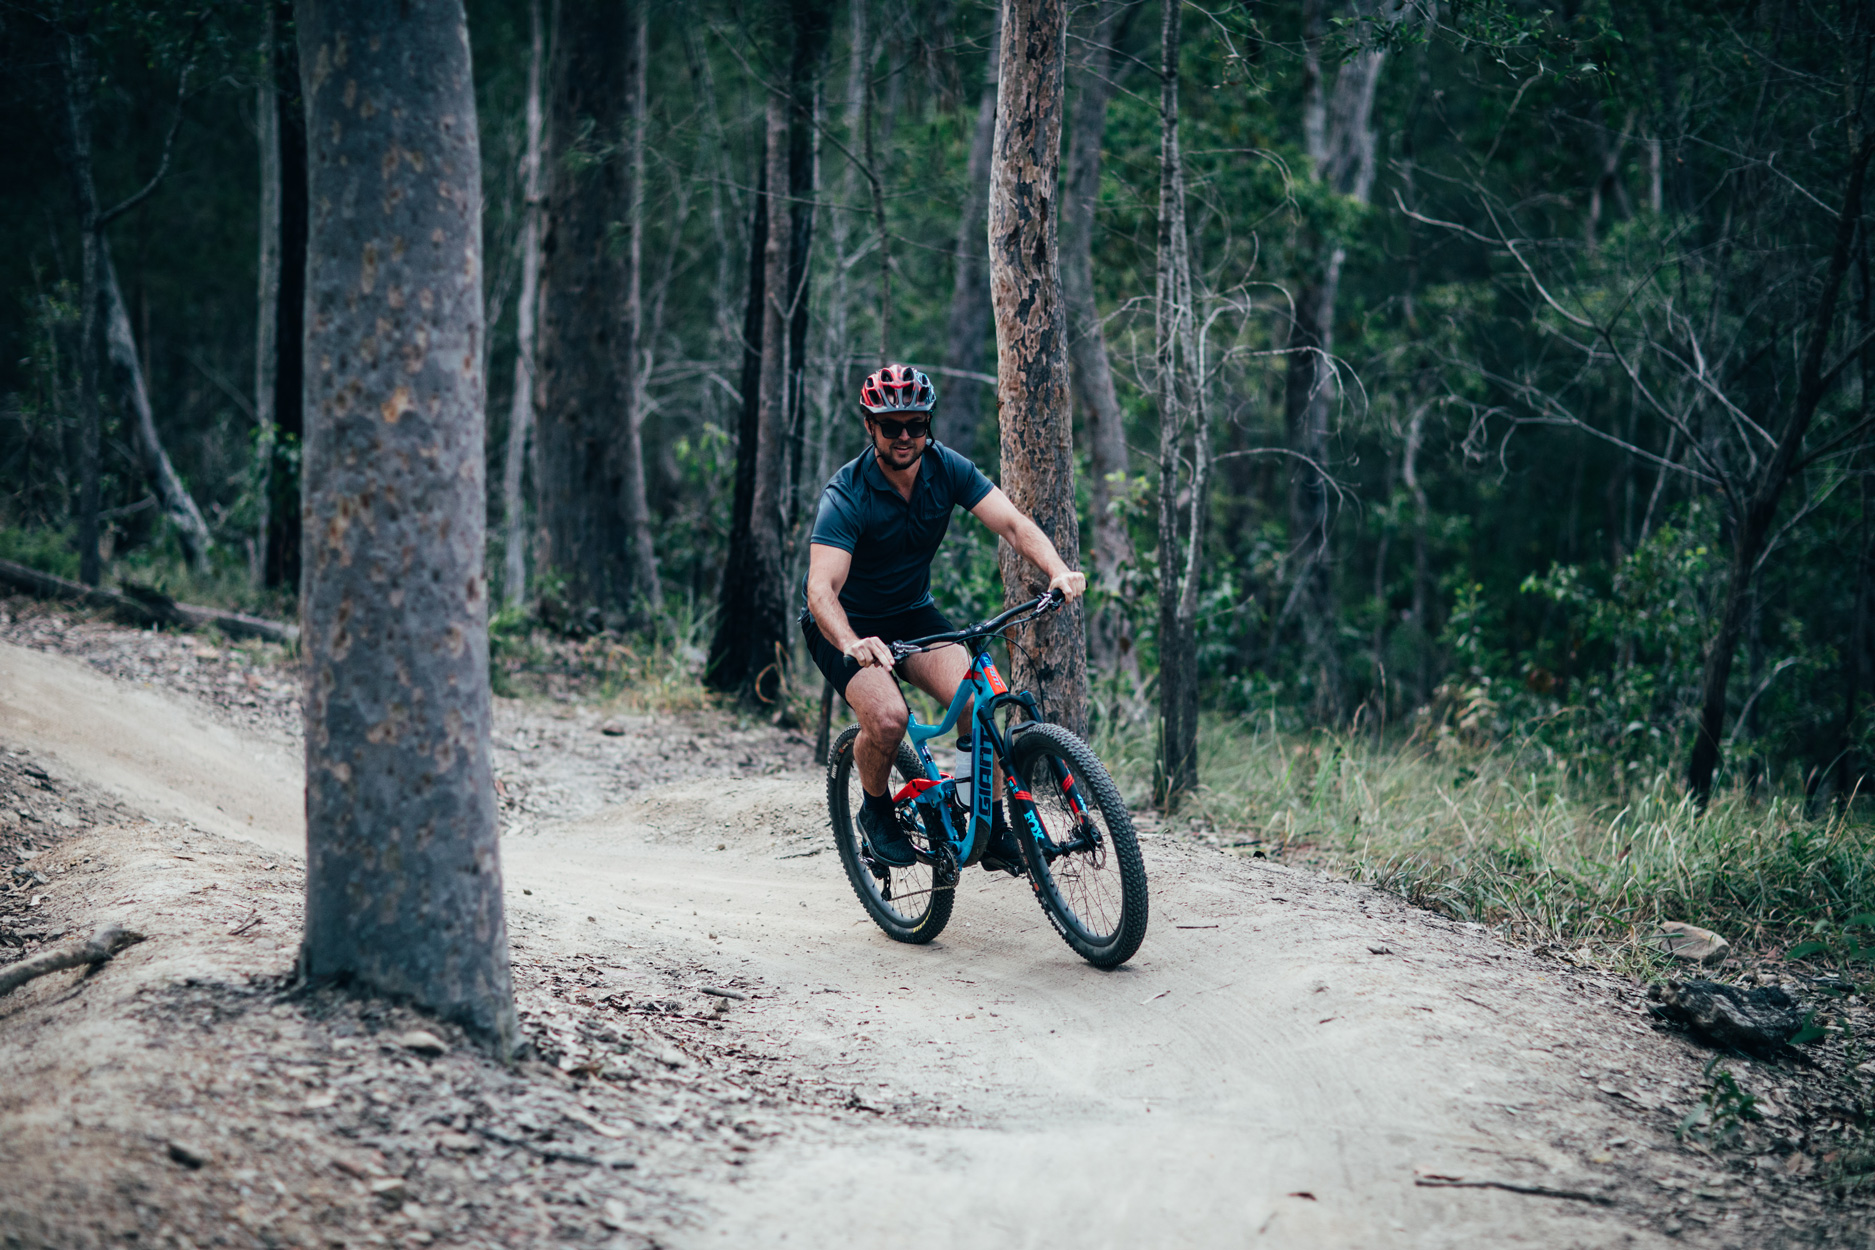 person riding a mountain bike on a dirt track surrounded by dark green trees